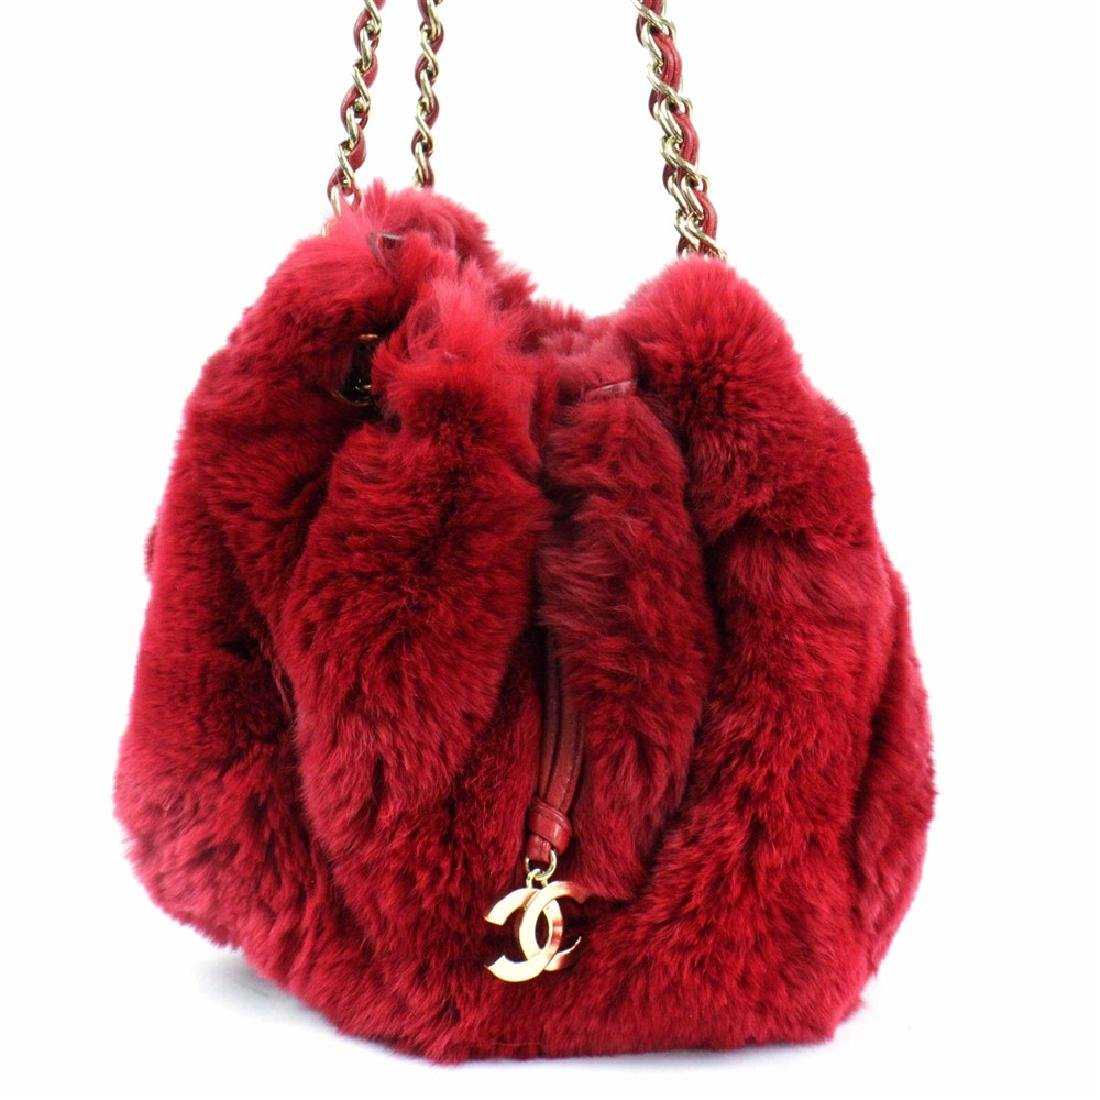 Chanel LIMITED EDITION Red RABBIT FUR CHAIN SHOULDER